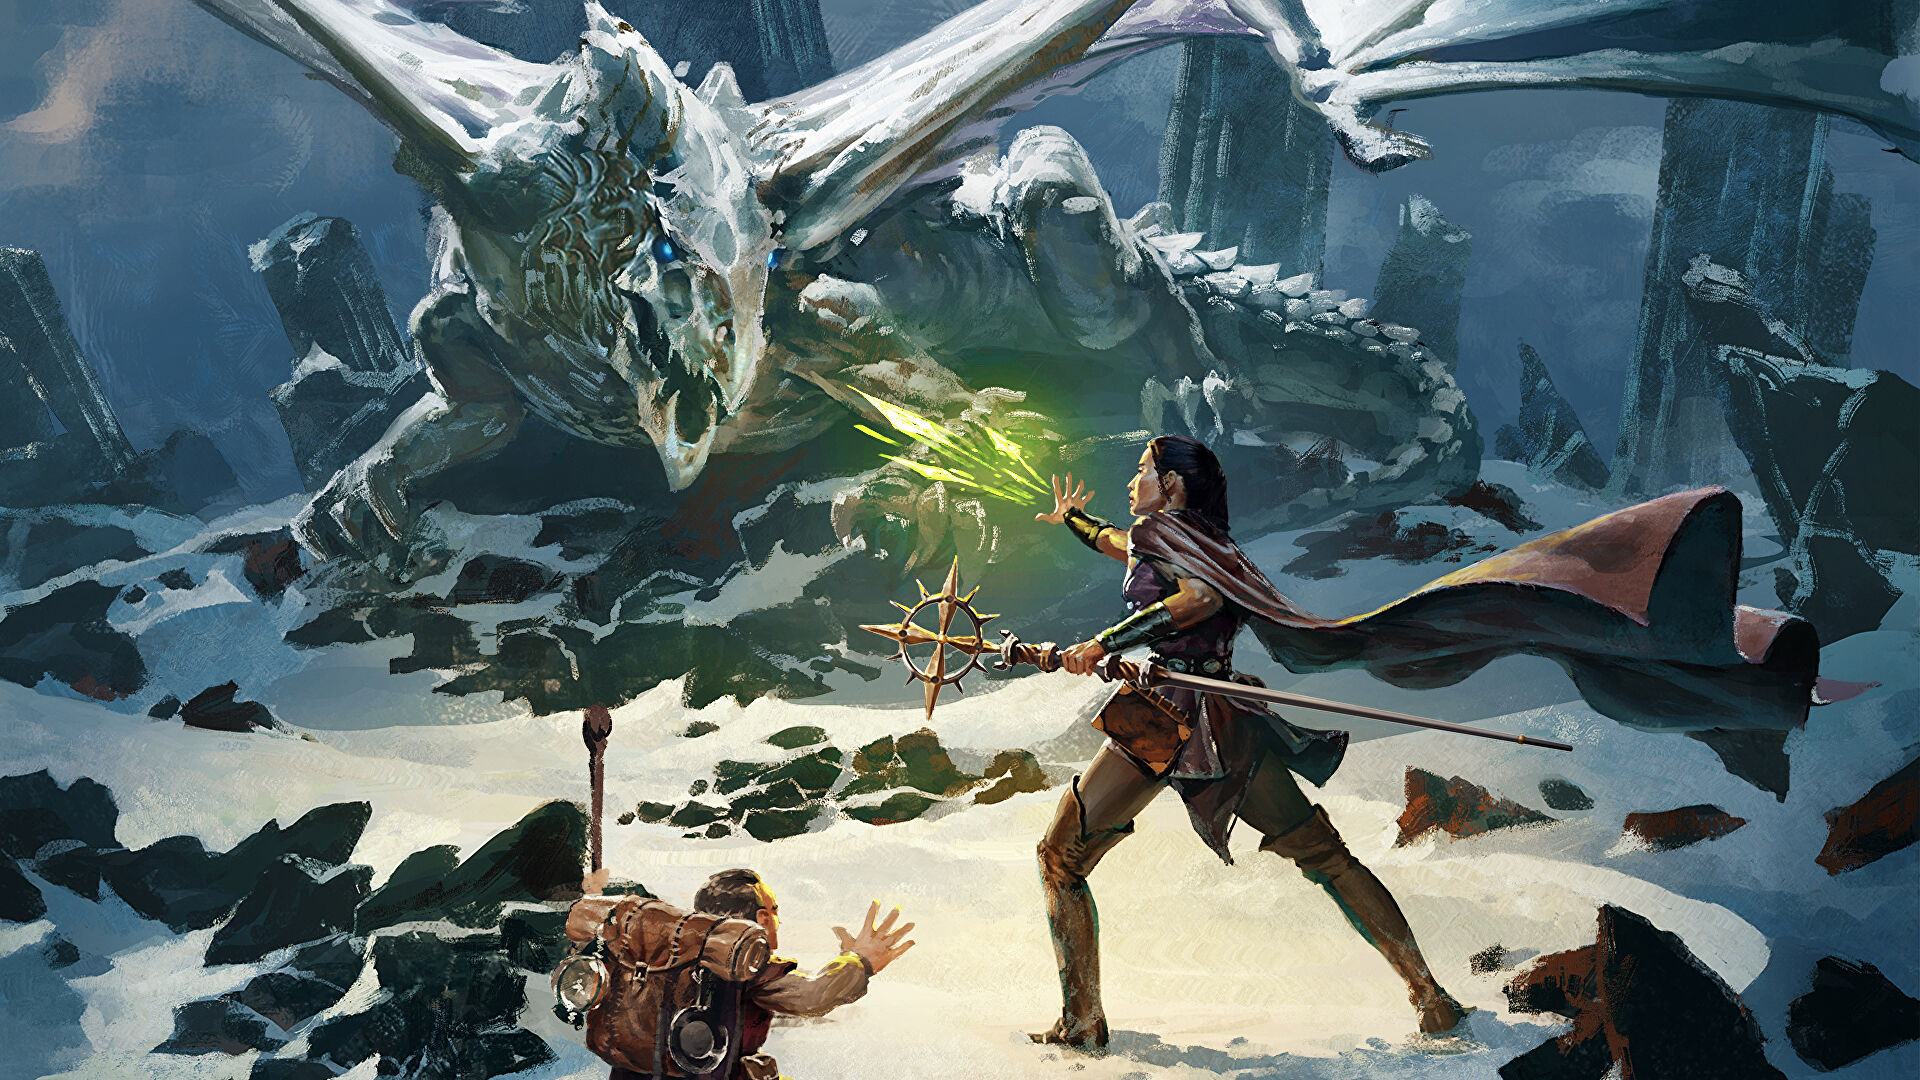 Warner Bros has proposed a project to bring the role-playing game Dungeons and Dragons to the big screen.